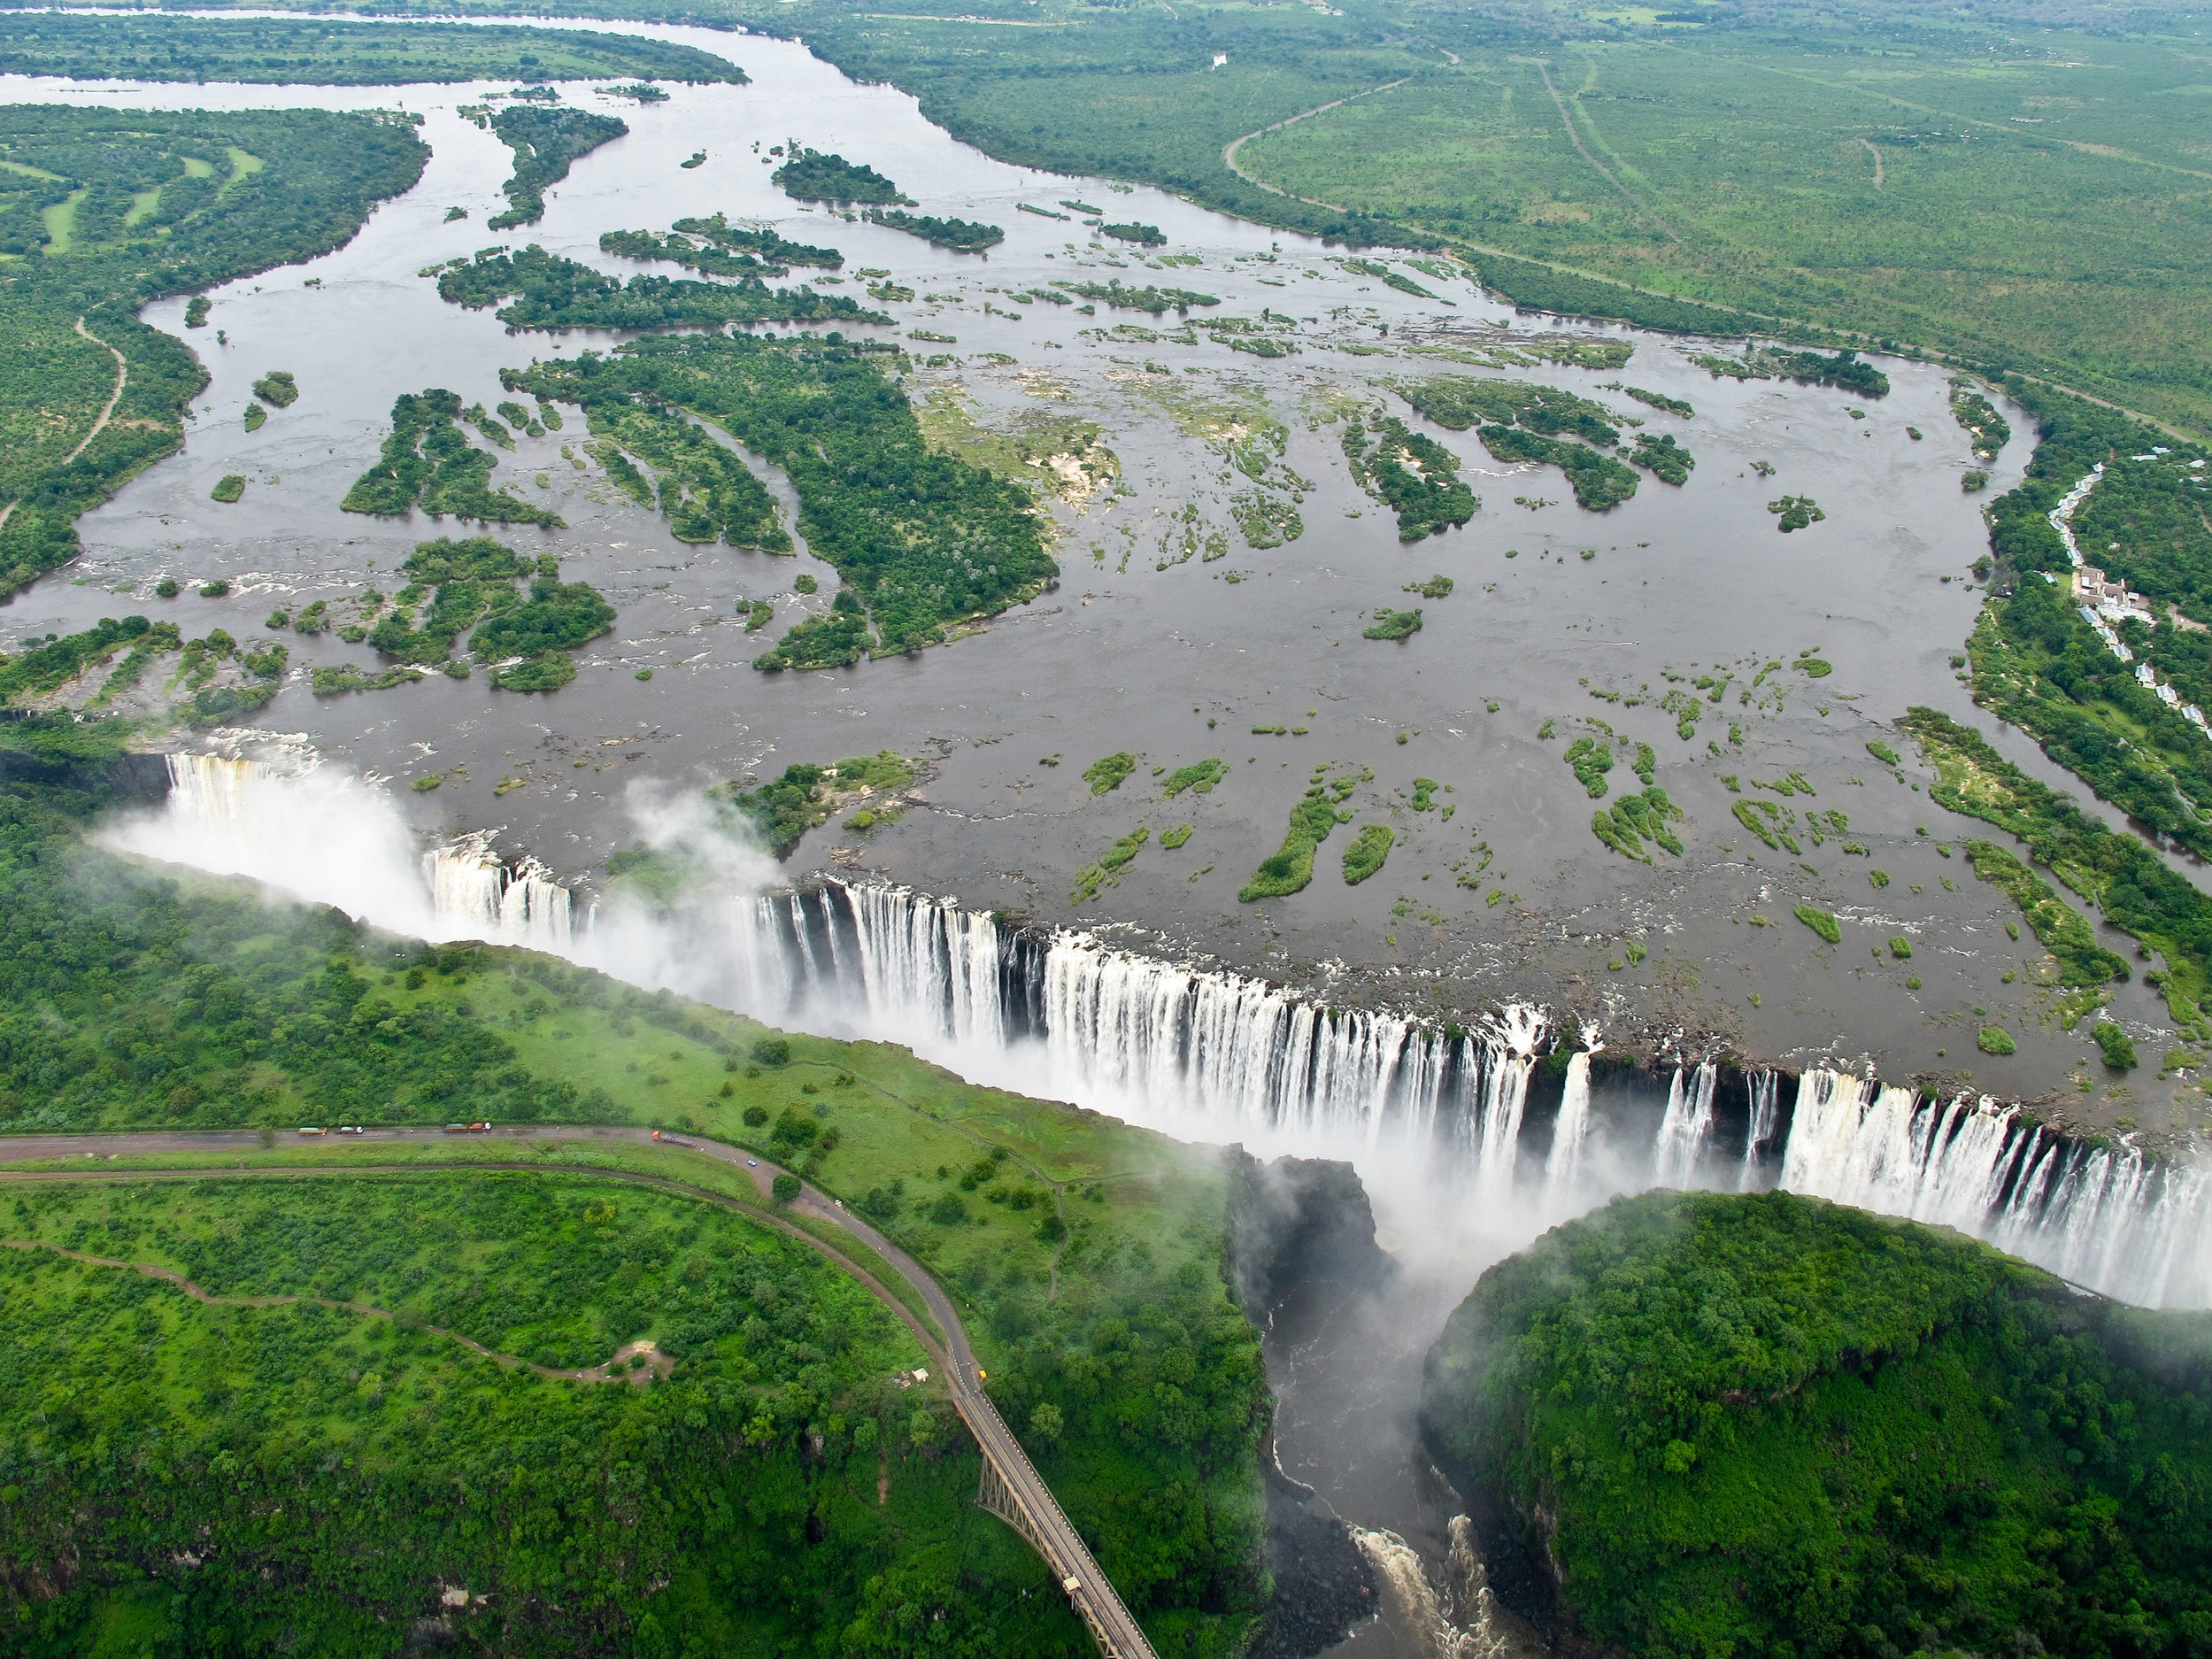 Zimbabwe - This southern African nation is must-see for those caravanning through the region. The country is home to popular destinations such as Victoria Falls (which straddles the border with Zambia) and the archaeological remains of Great Zimbabwe.